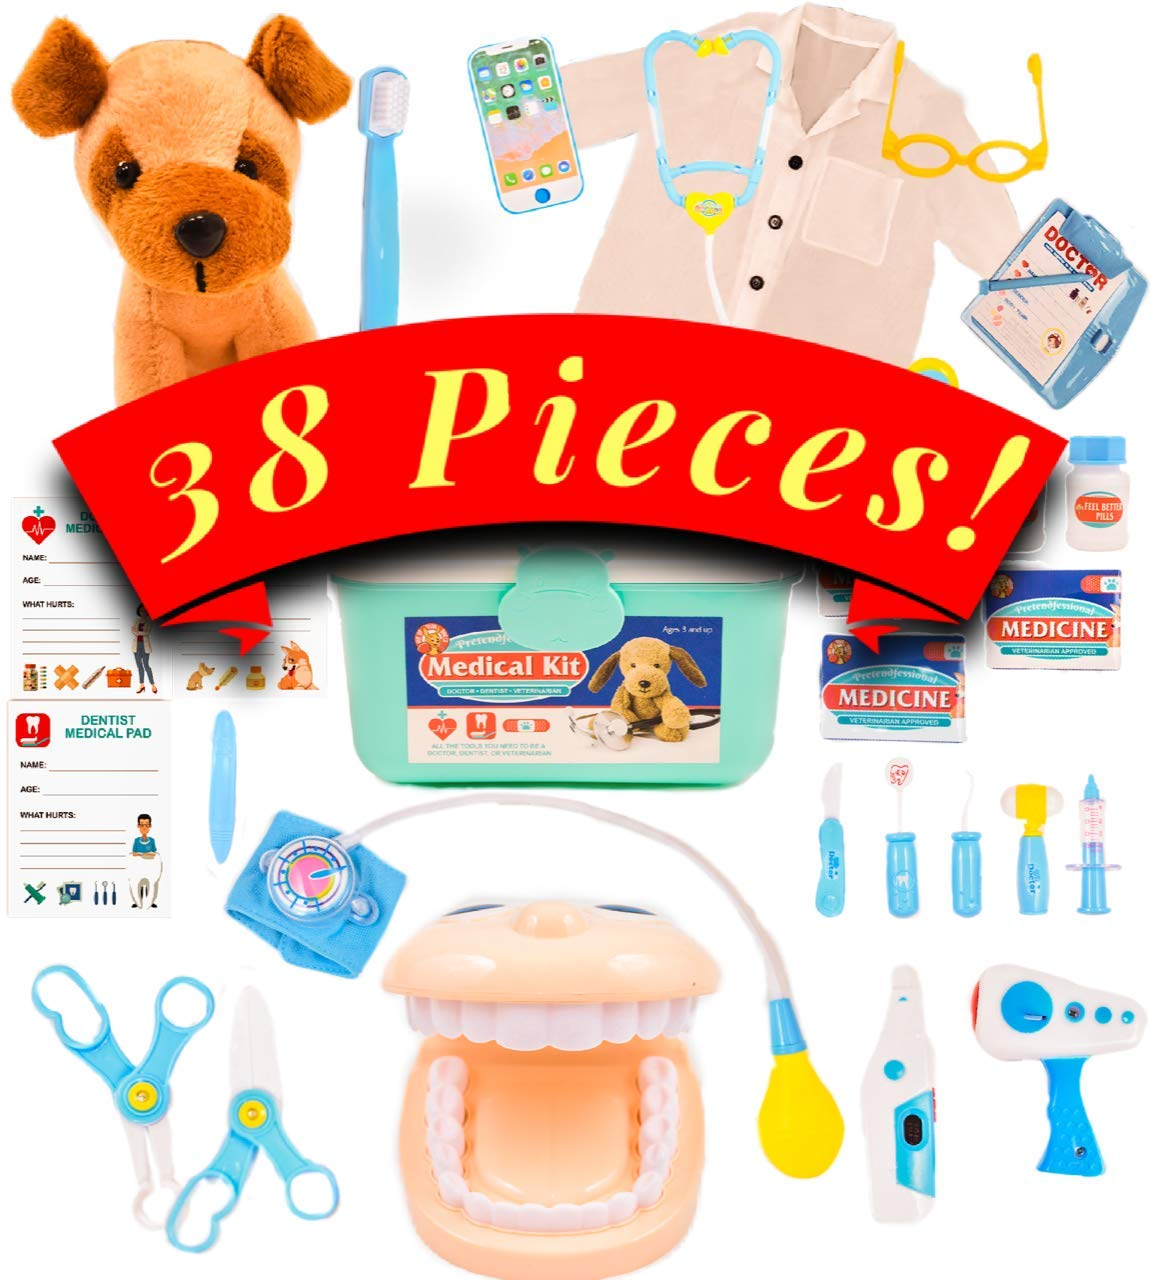 Pretend Medical Kit - Doctor Kit for Kids with Lab Coat - Dentist Kit and Veterinarian Kit for Kids with Teeth Set and Dog patients - Doctor, Nurse, Dentist or Veterinarian by PUYD